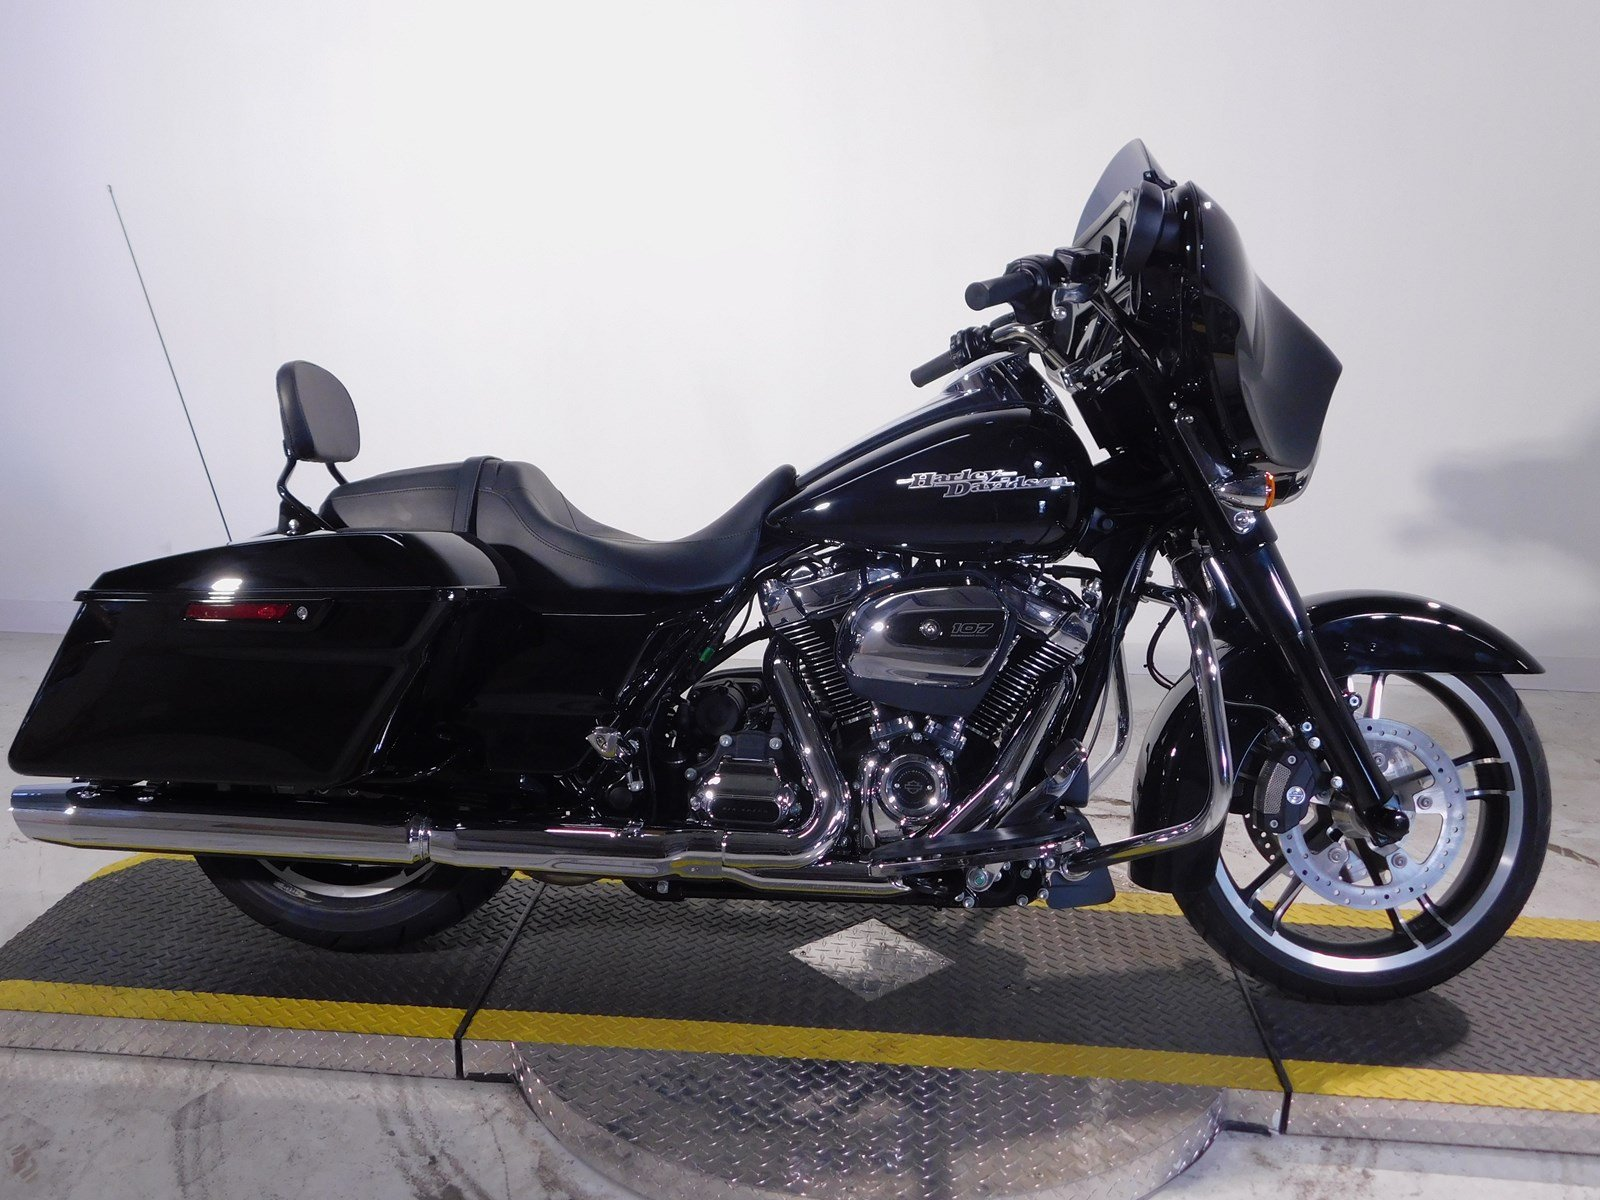 New 2017 Harley Davidson Street Glide Special Flhxs